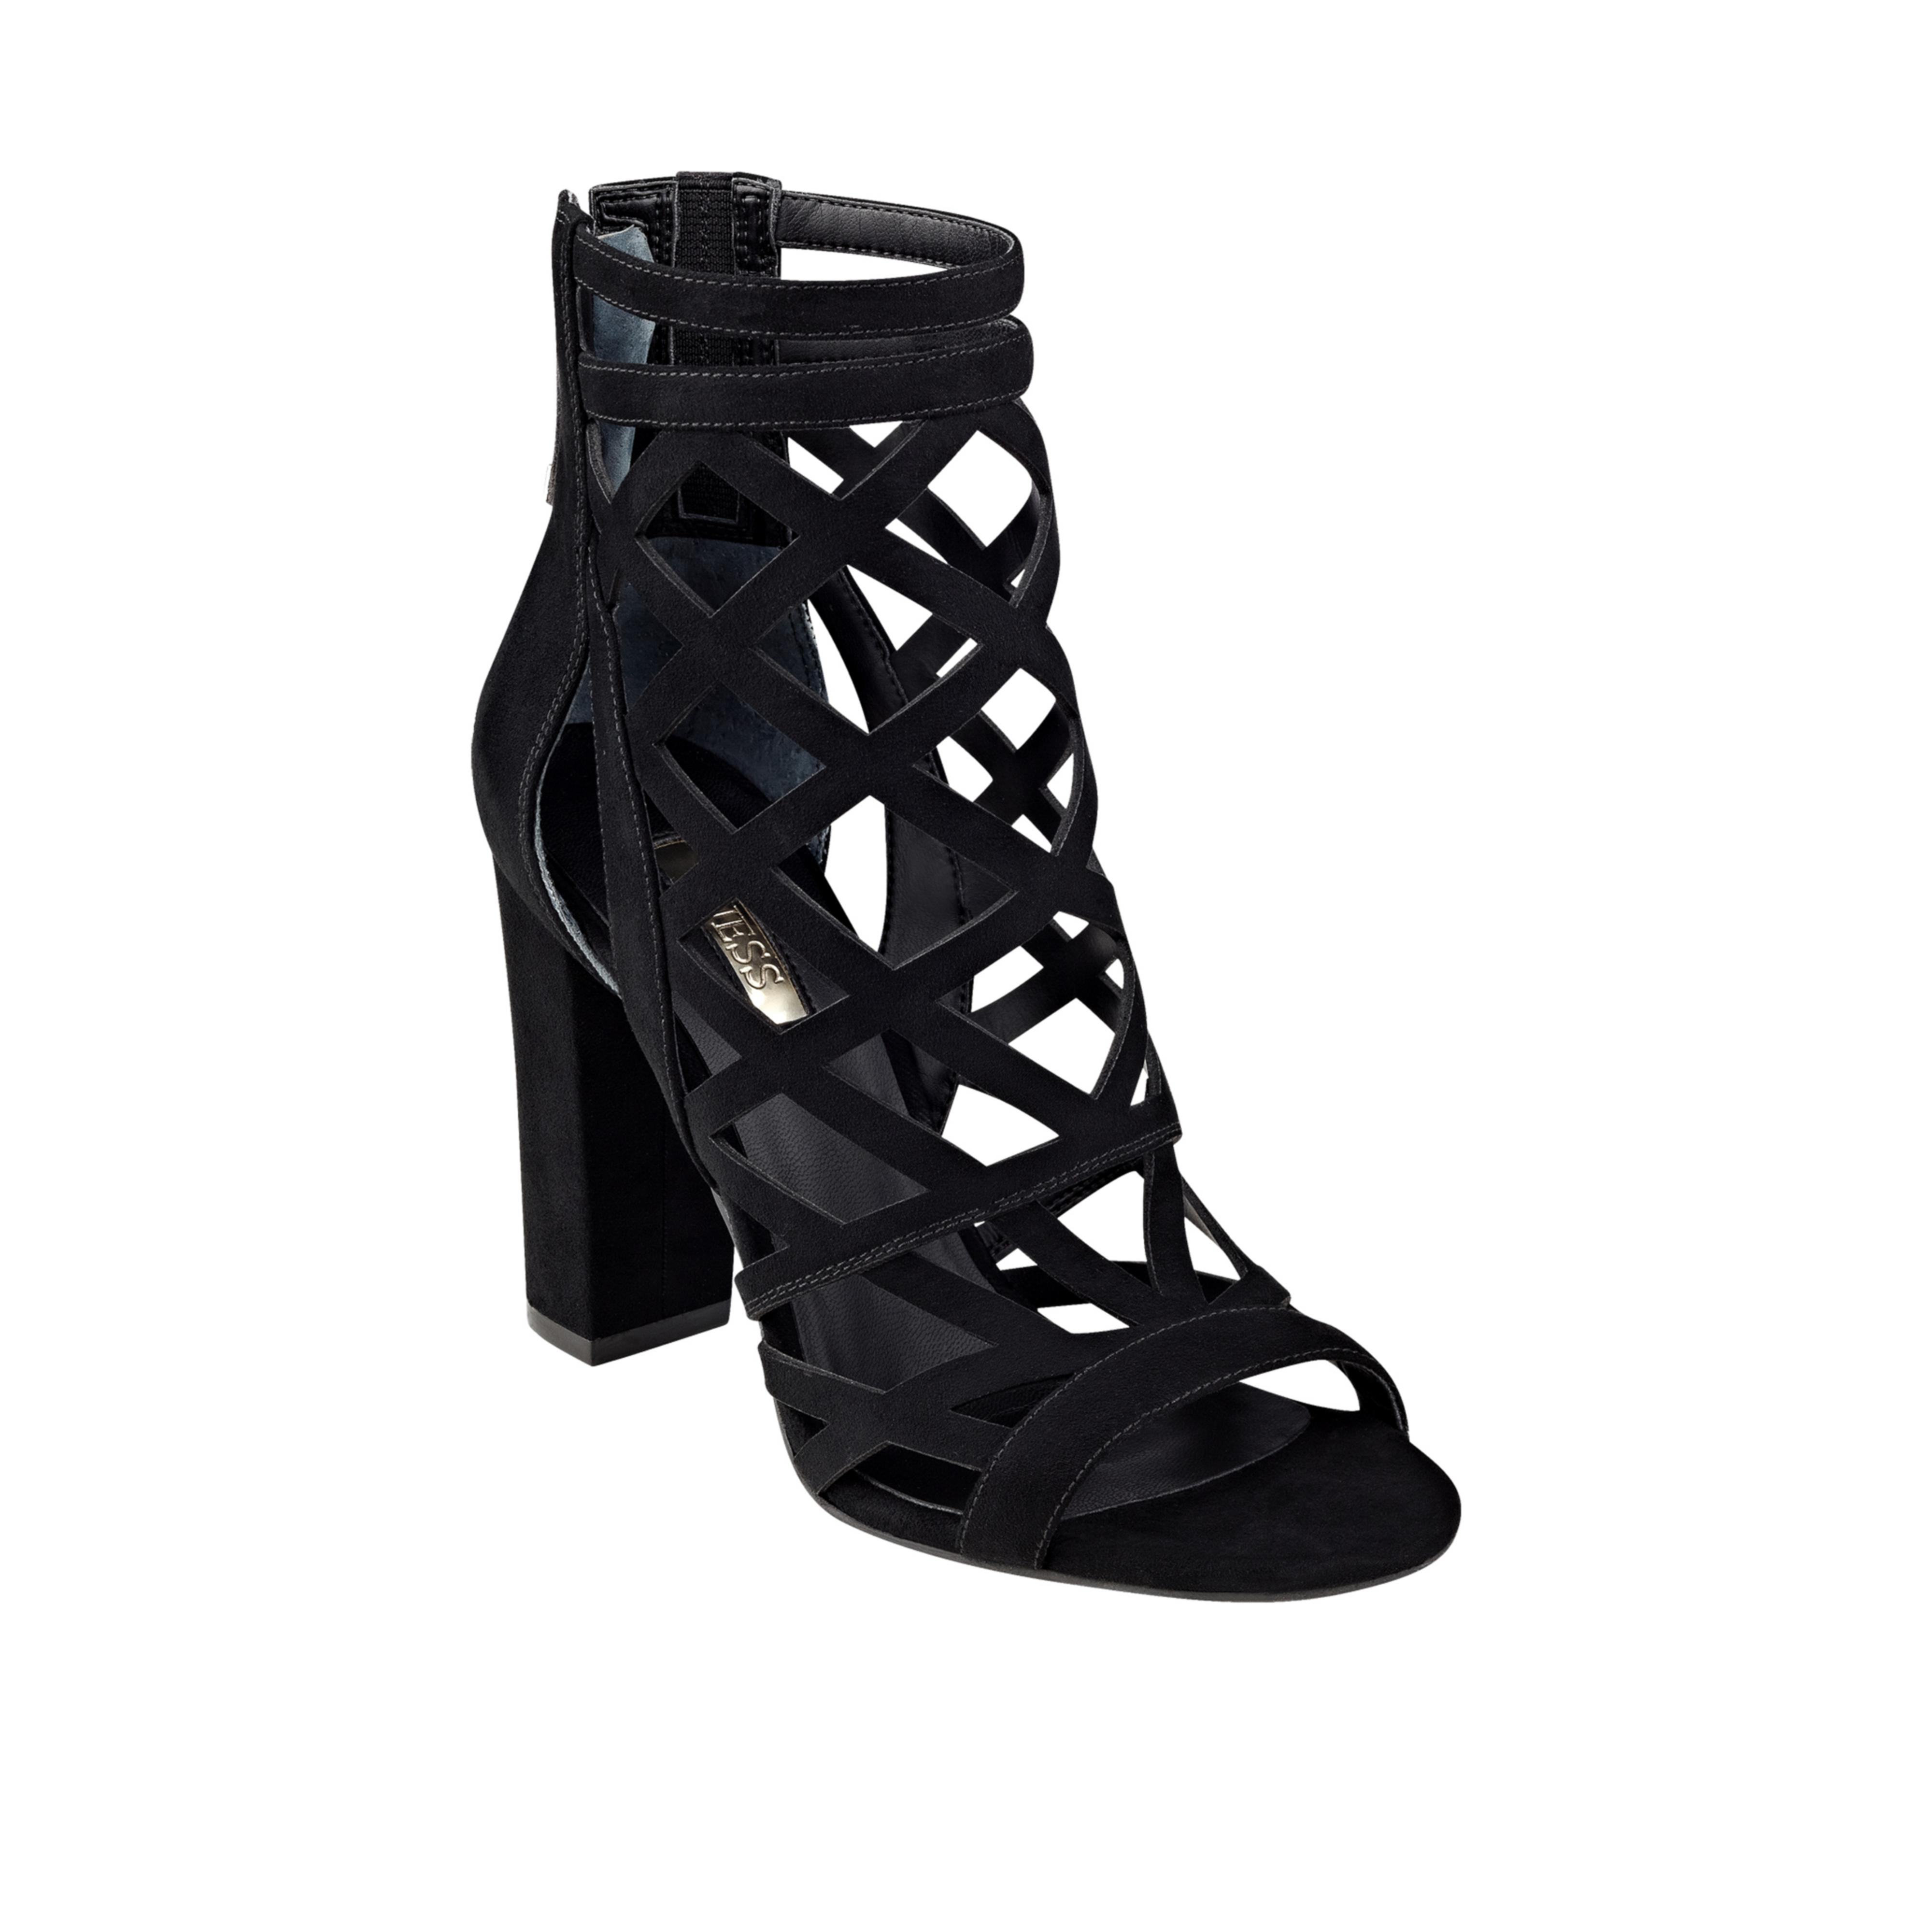 ff3f3e39804 Lyst - Guess Eriel Caged Heels in Black